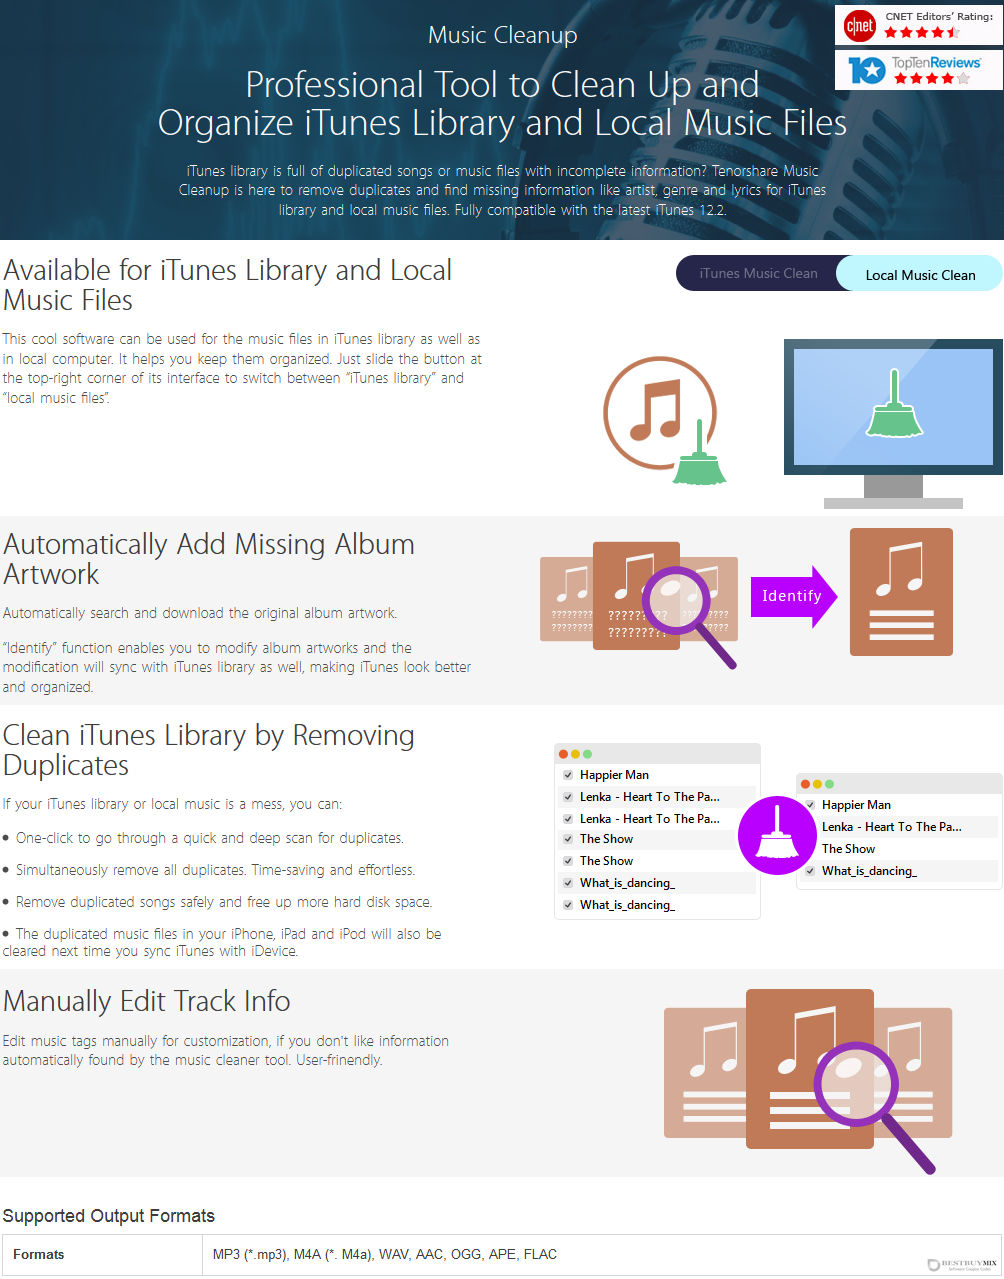 Tenorshare Music Cleanup Discount Coupon Code